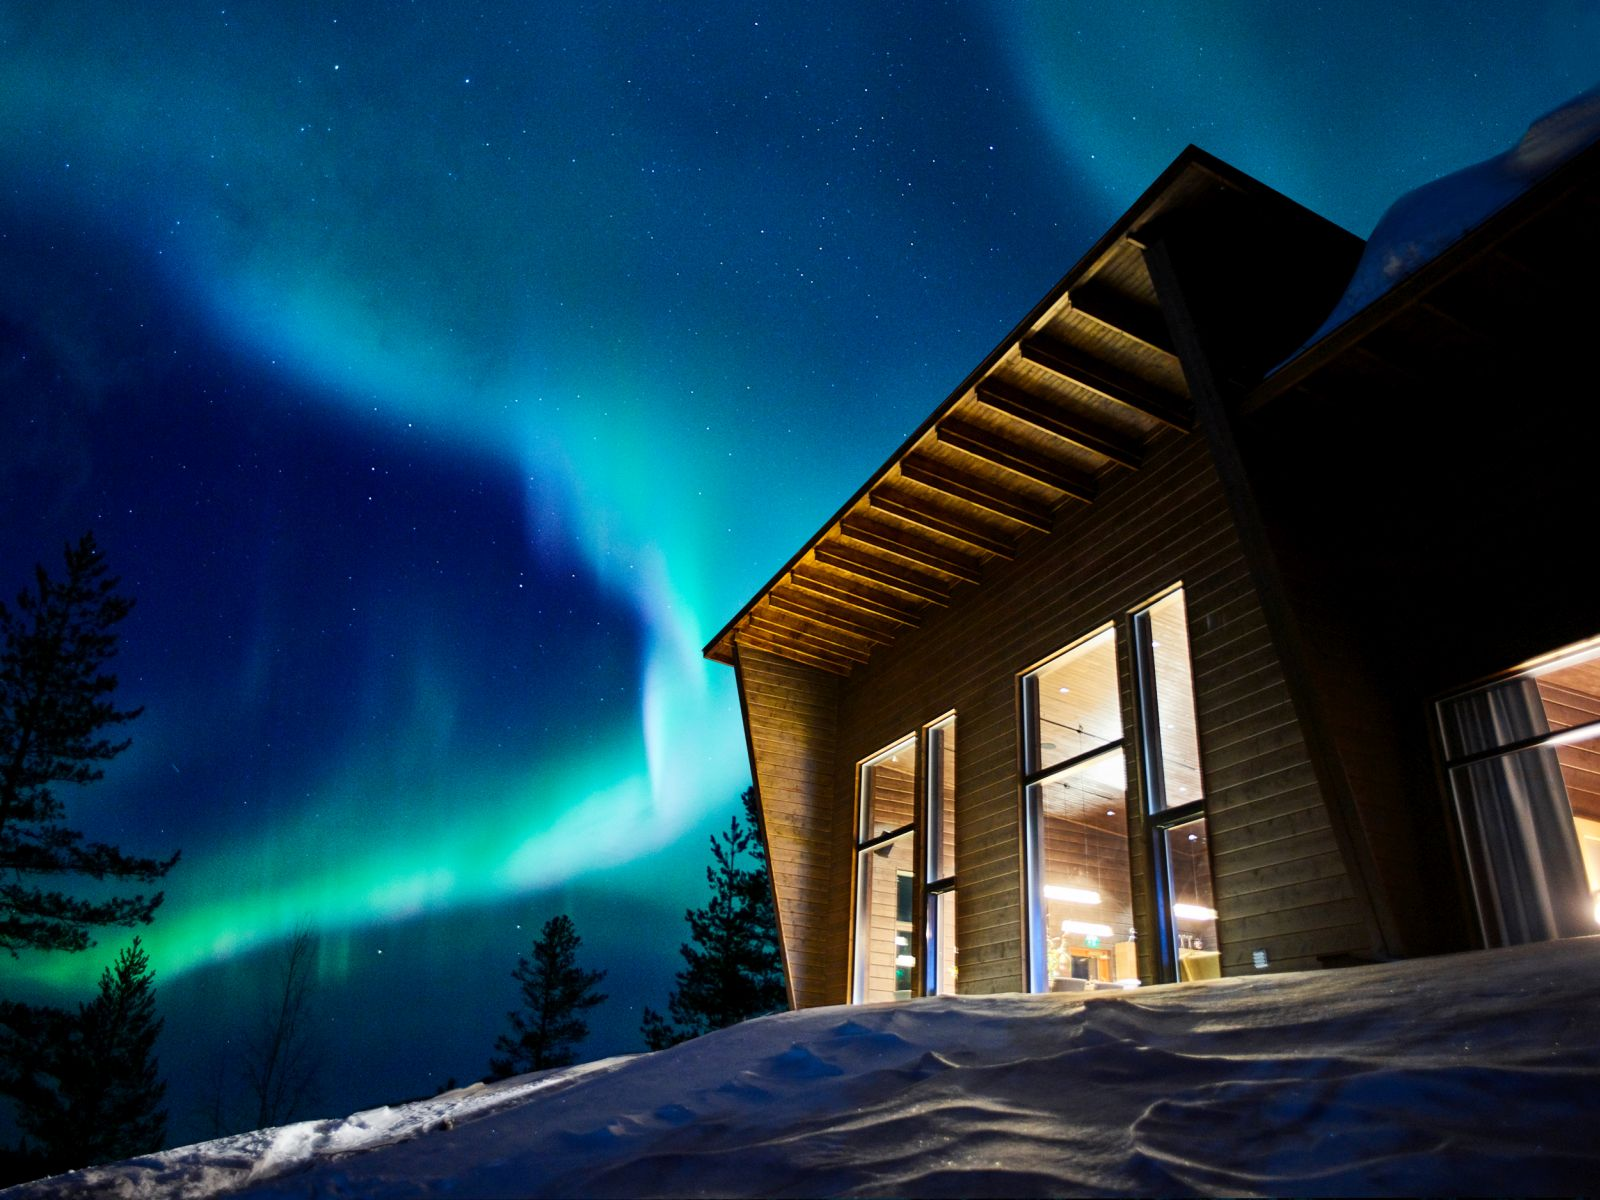 The Northern Lights shining over Octola wilderness lodge in Finland